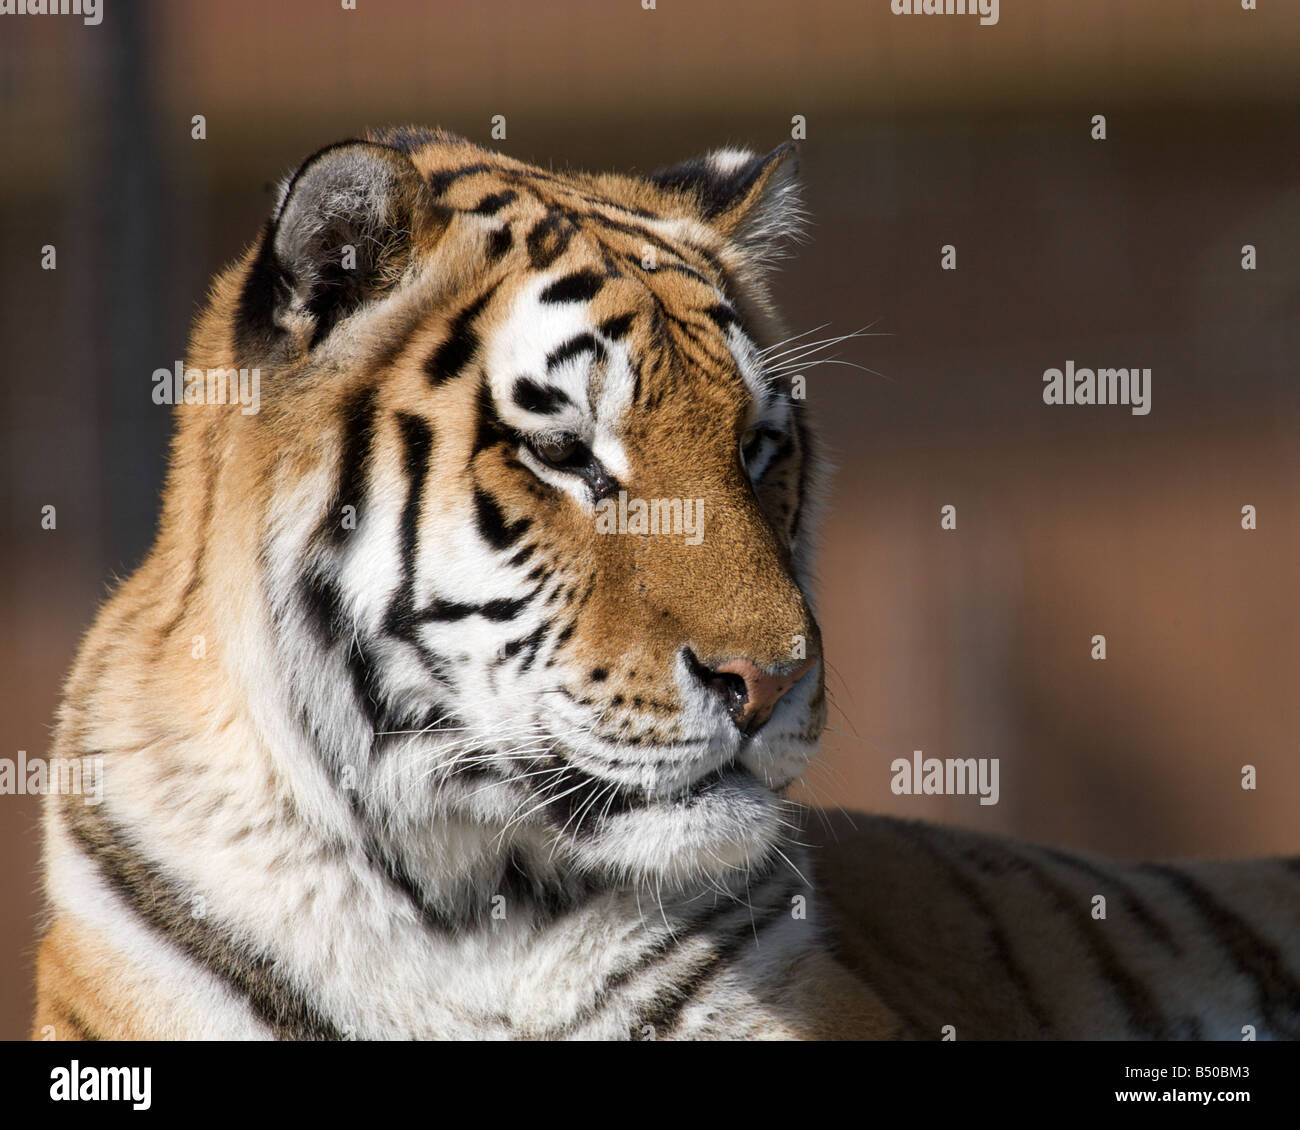 Captive tiger - Stock Image